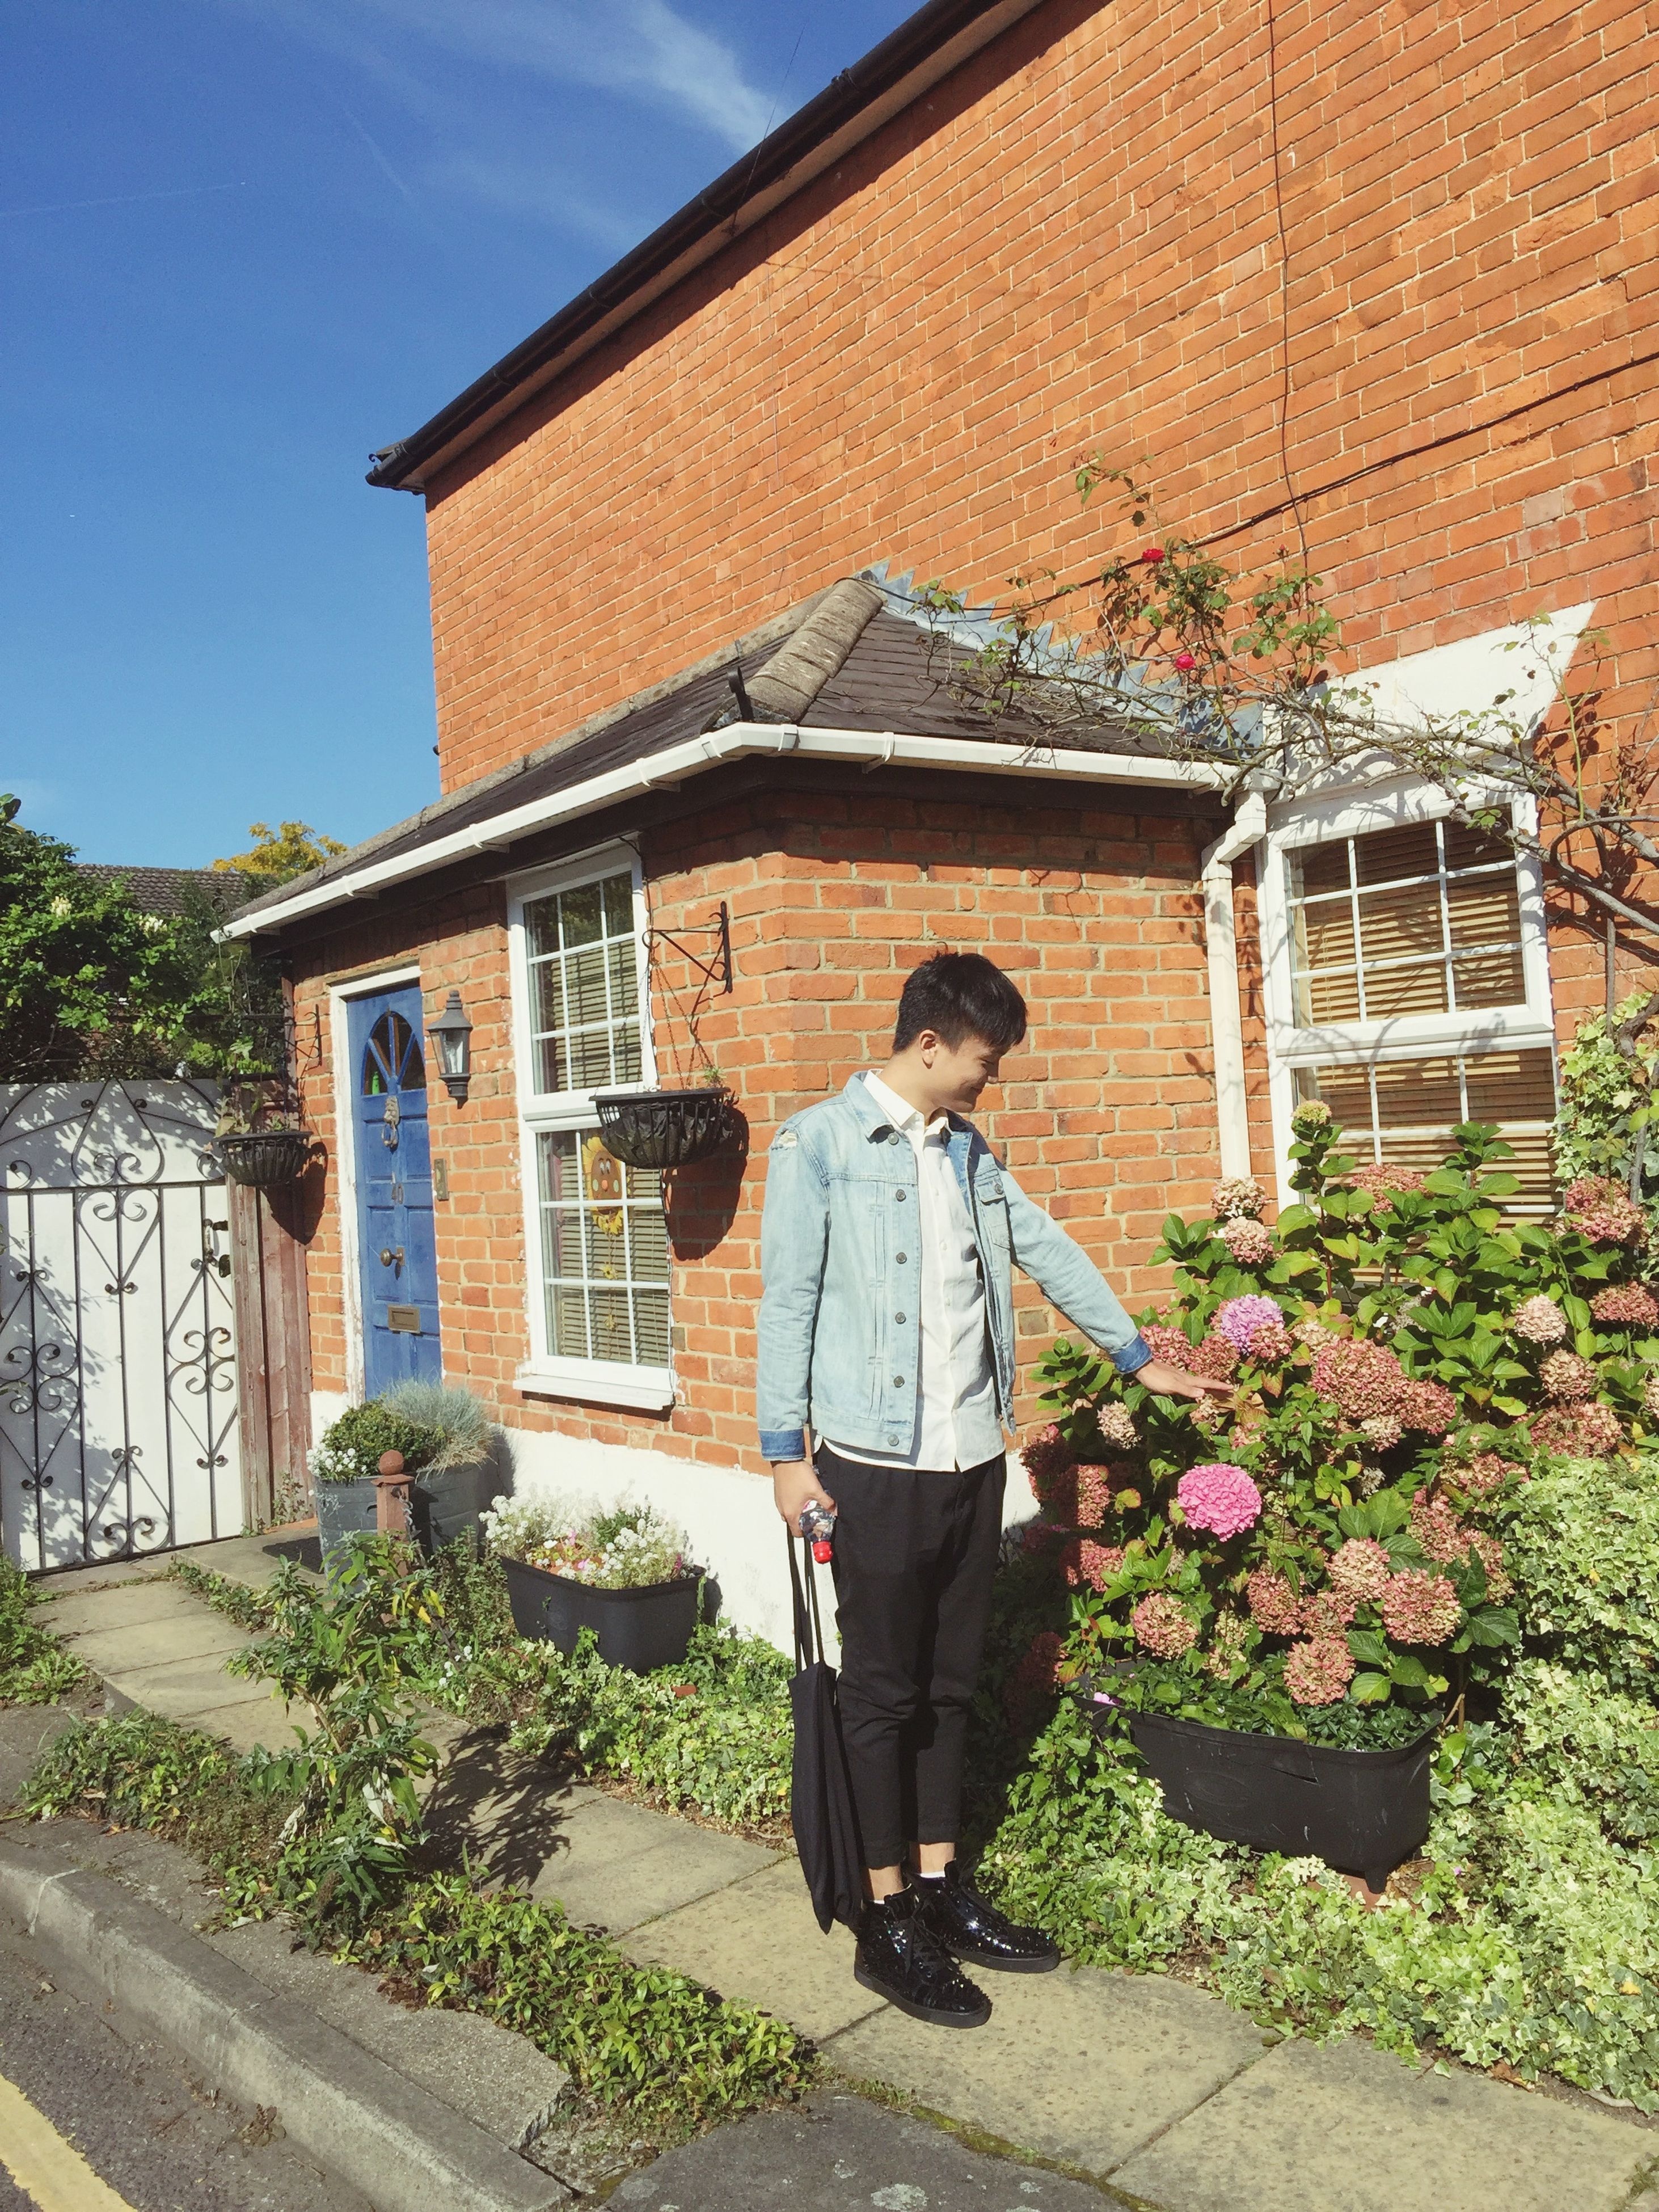 building exterior, architecture, built structure, casual clothing, lifestyles, full length, young adult, leisure activity, person, house, standing, young women, residential structure, plant, rear view, sunlight, three quarter length, sky